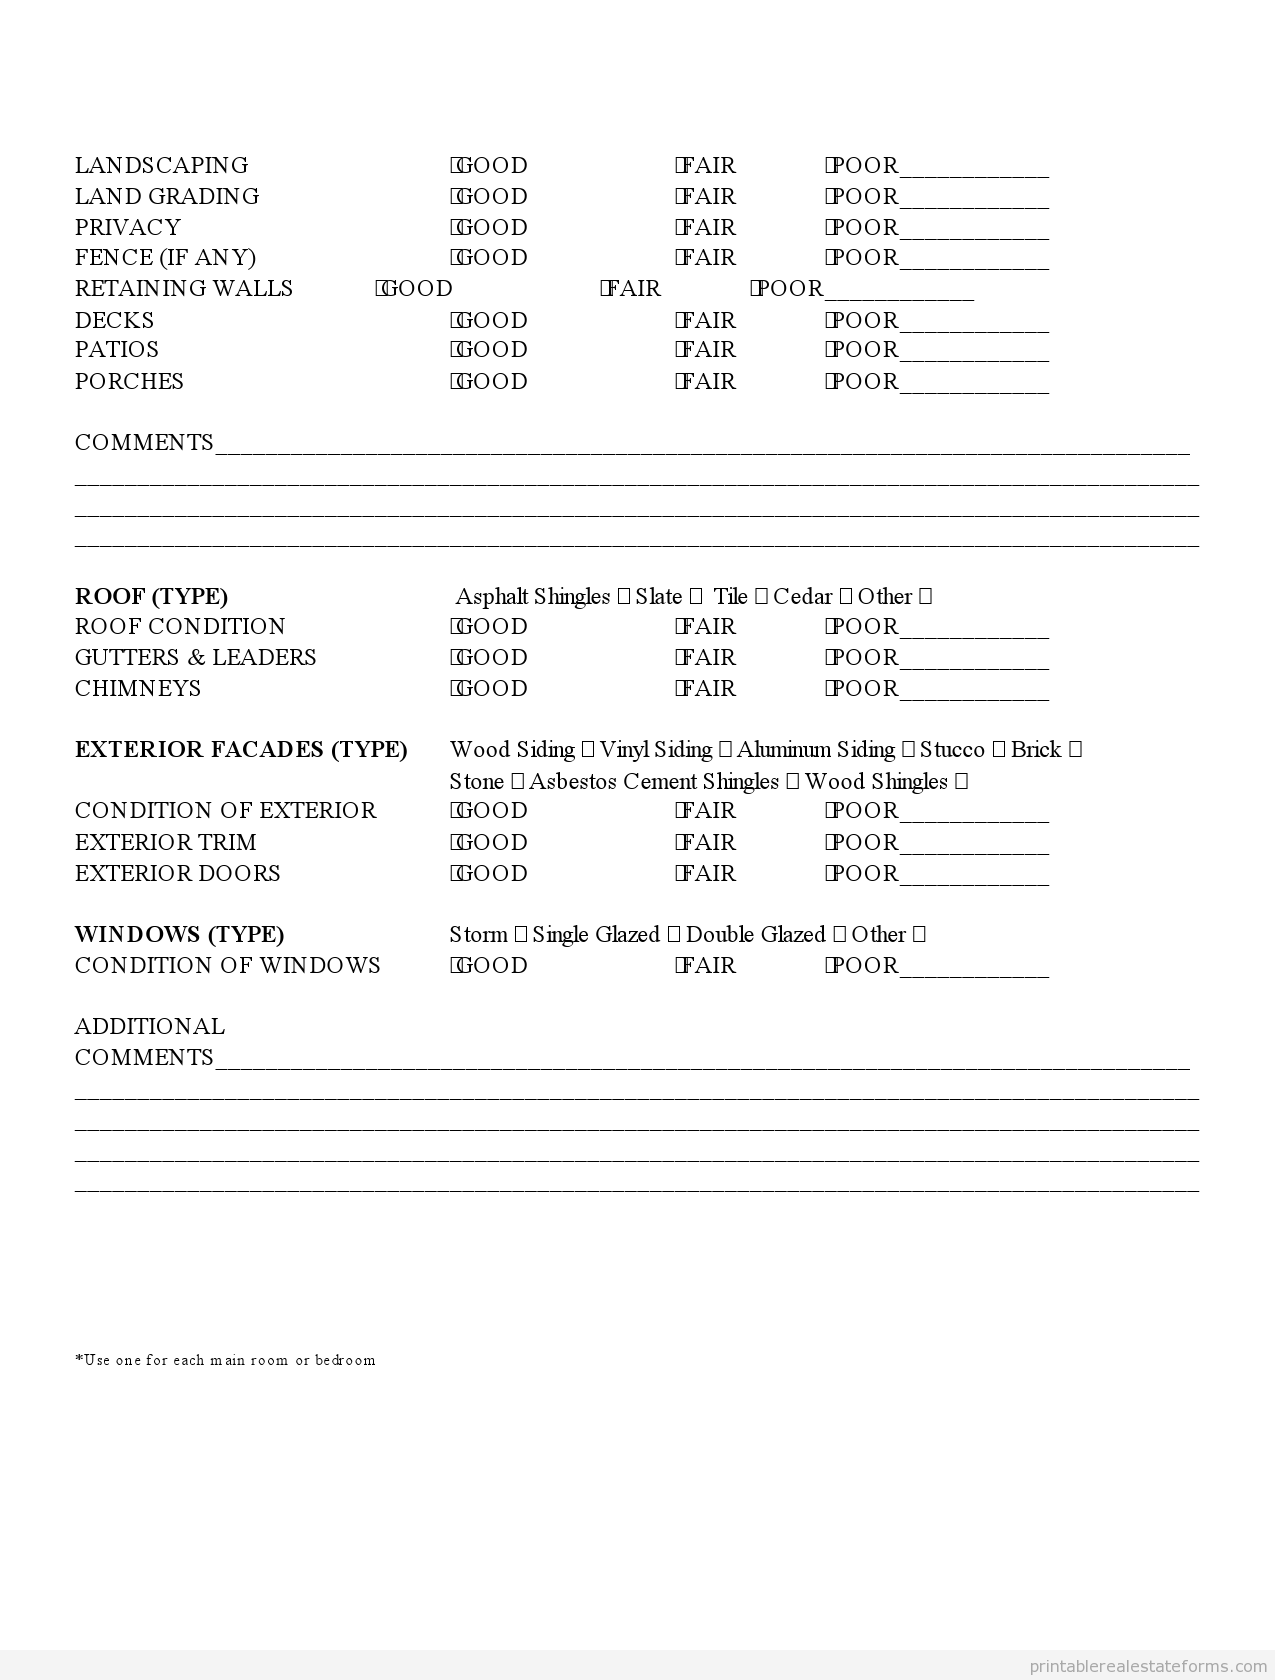 Printable property inspection checklist template 2015